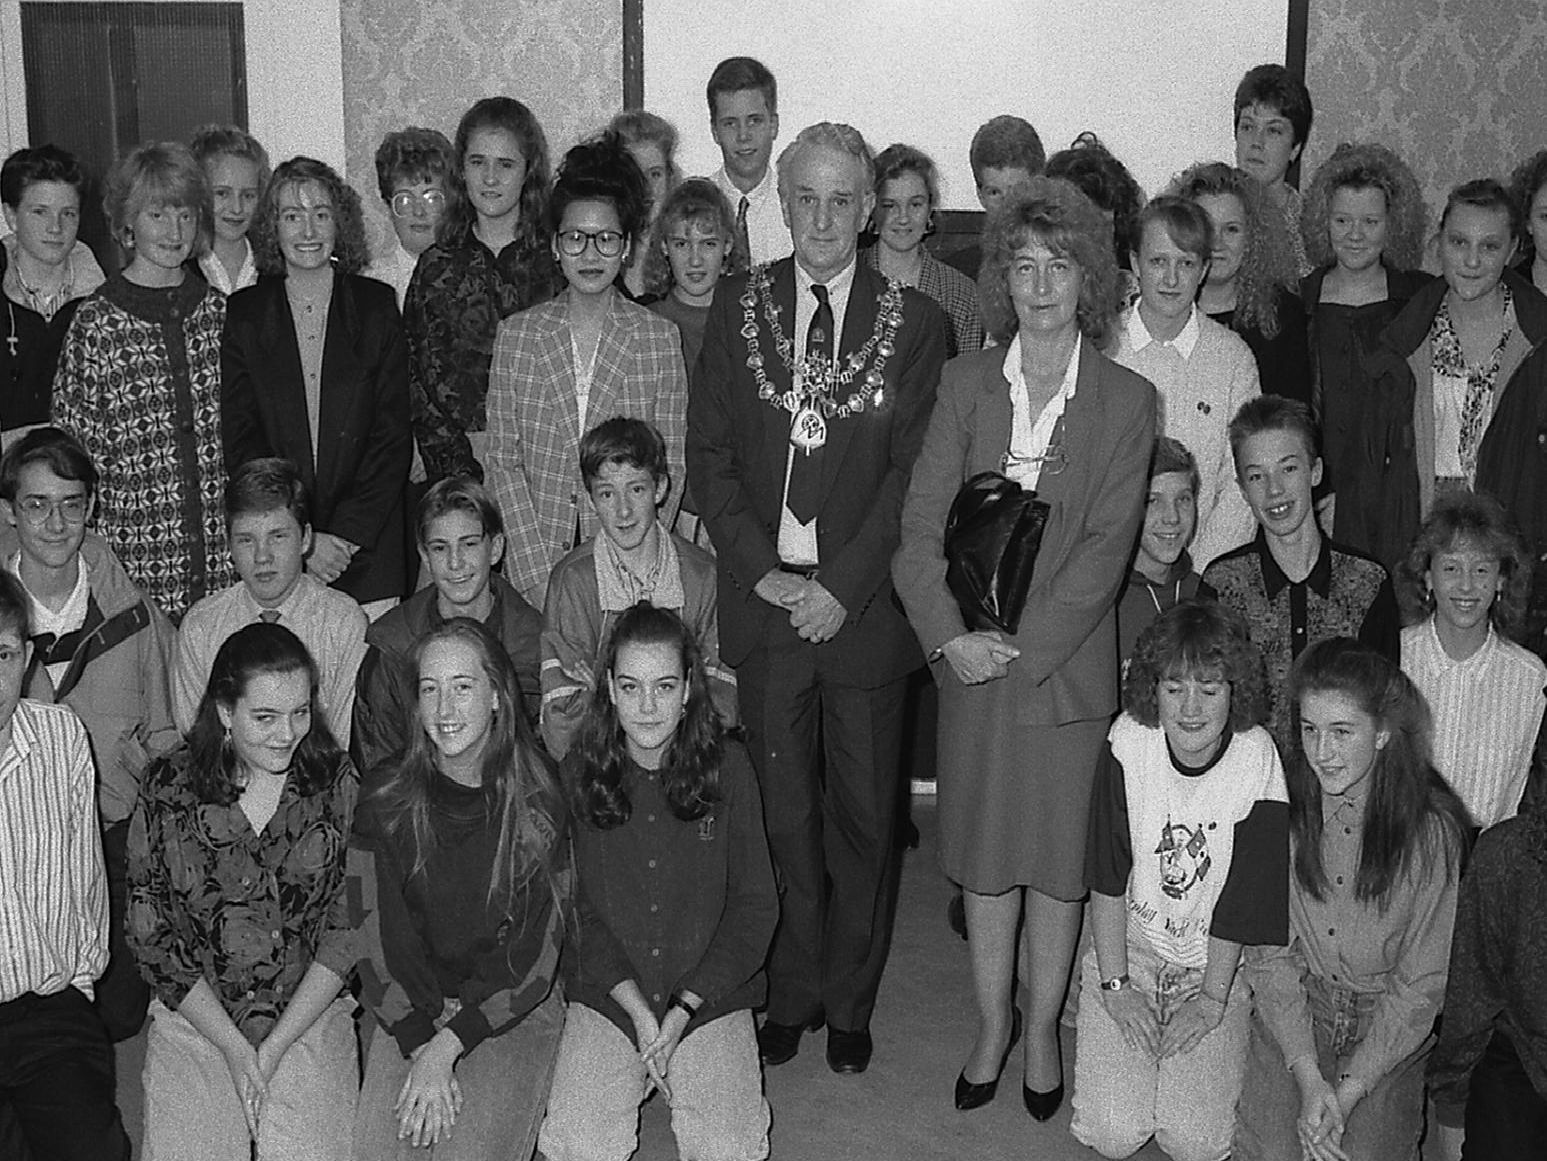 1989: A fabulous group shot featuring children involved in the Duke of Edinburgh Awards. Are you on this picture?